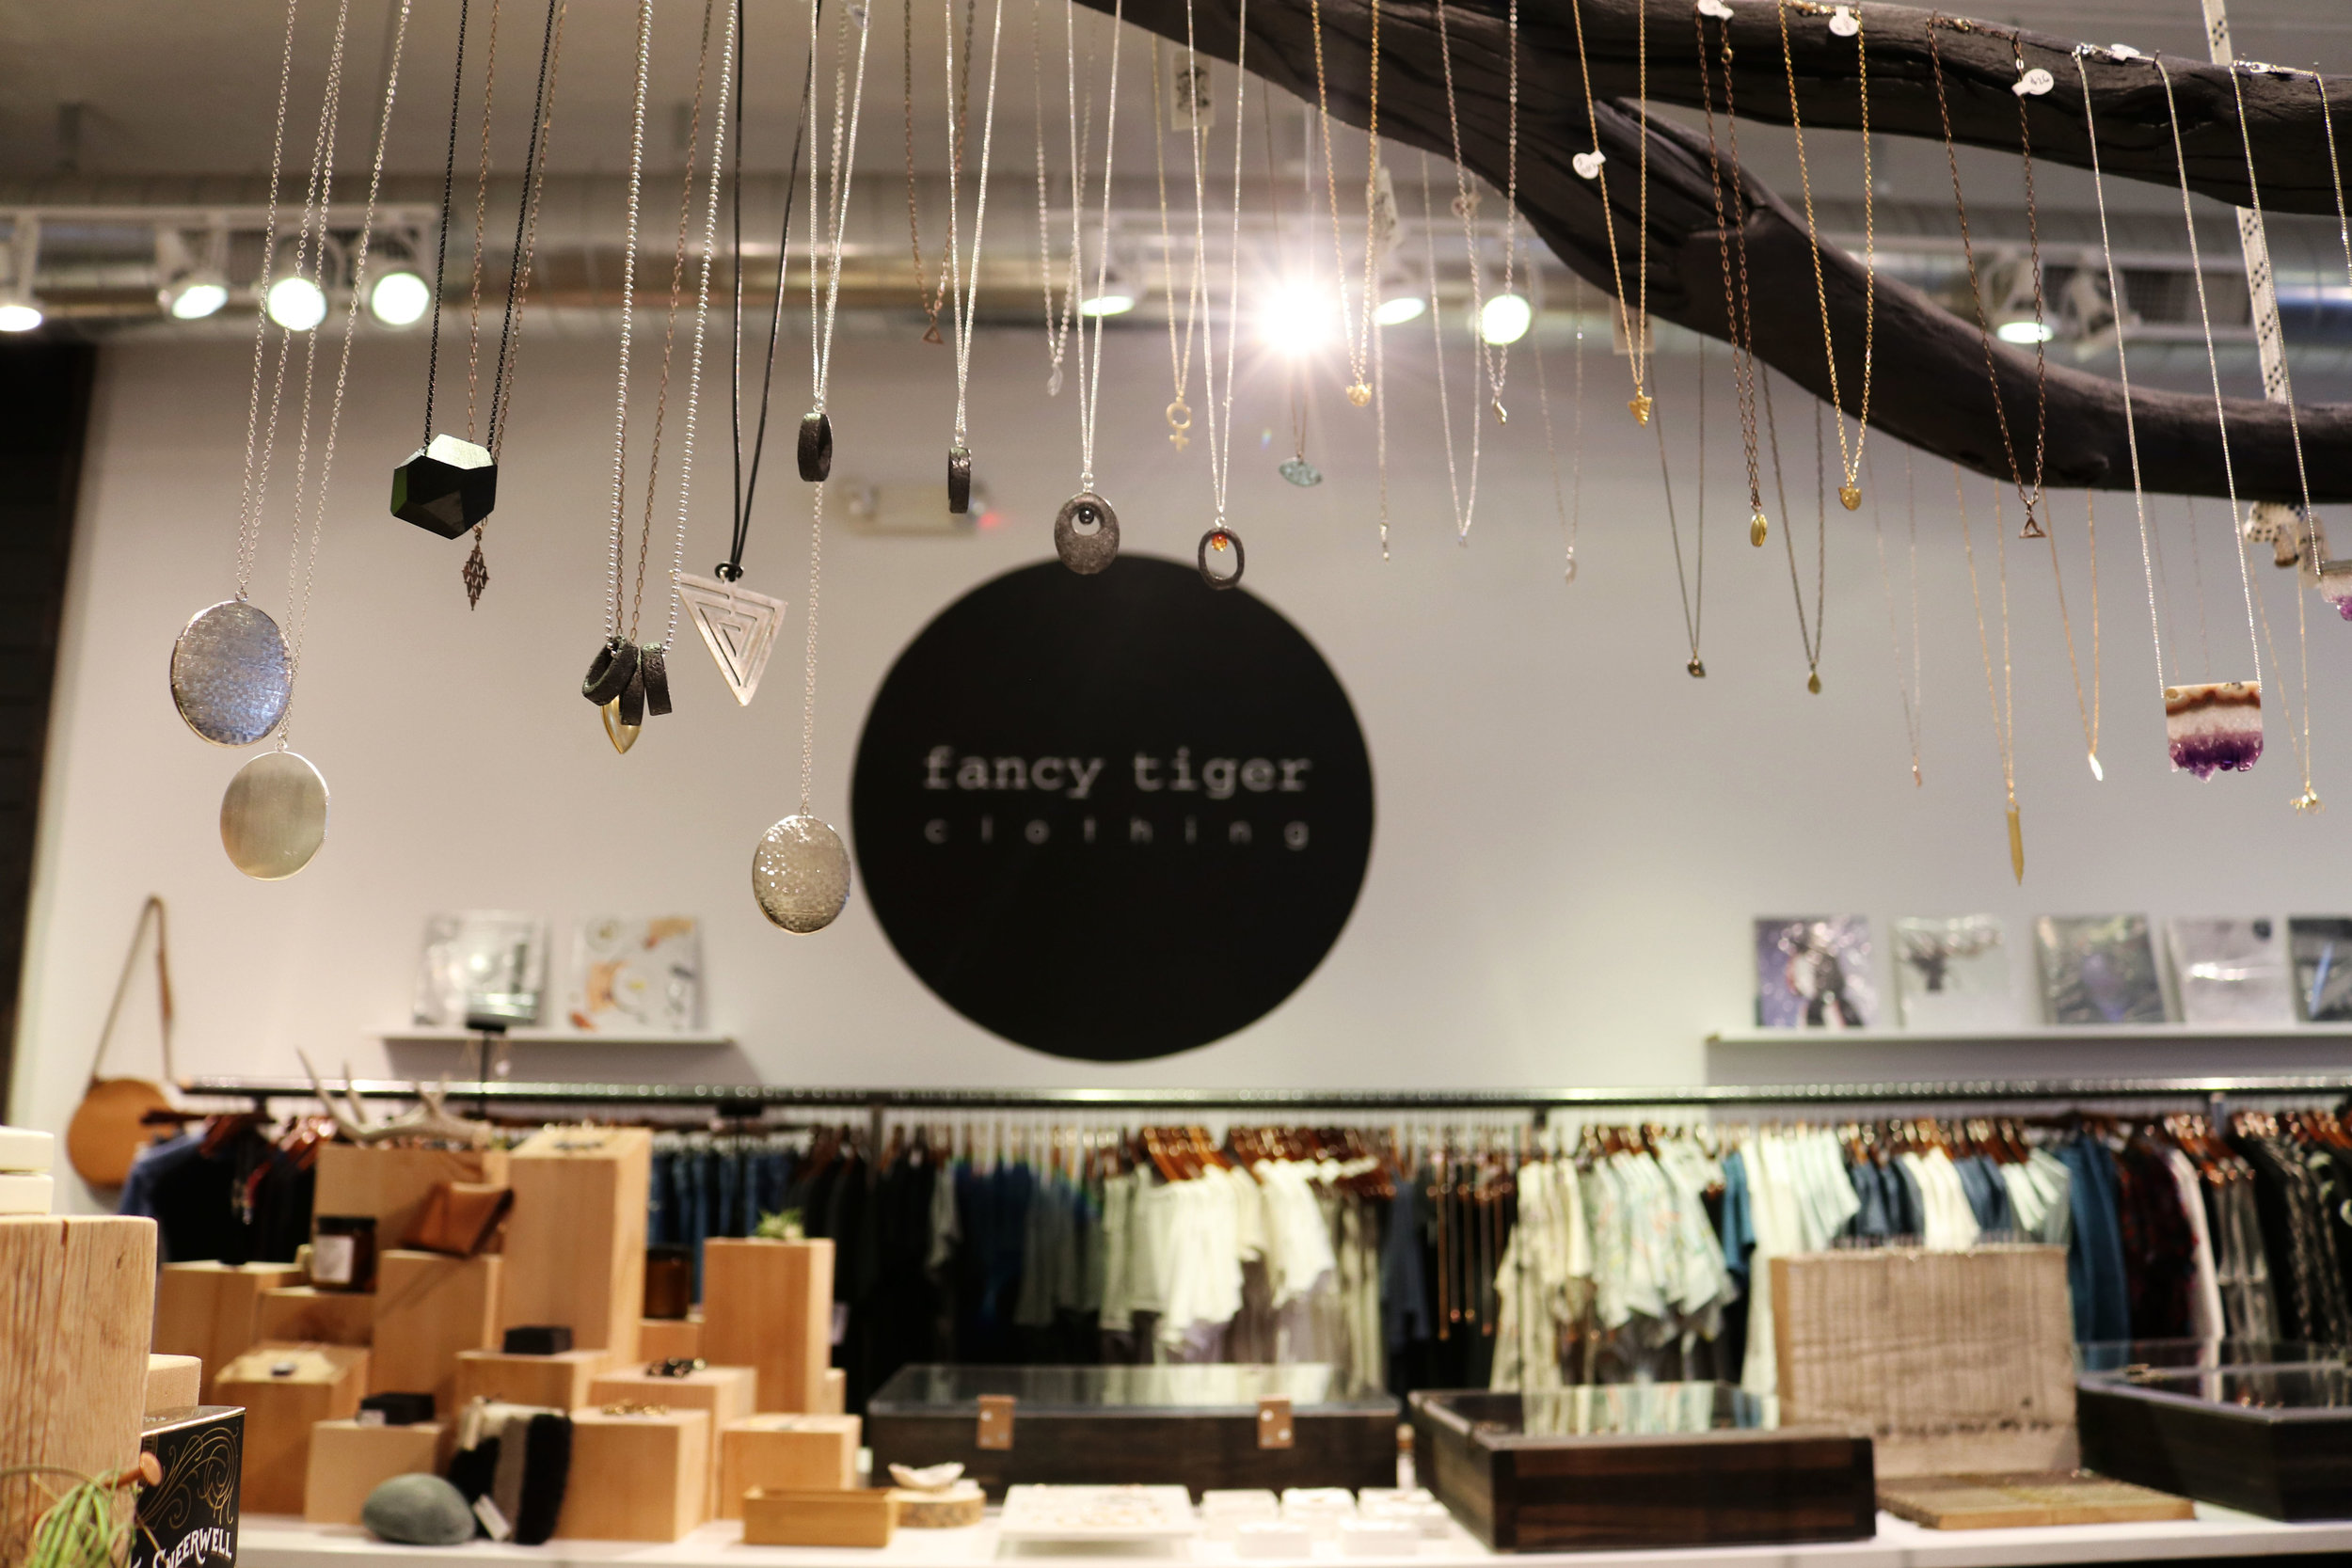 We went to Buffalo Exchange, a comic book store/coffee shop, and a boutique called Fancy Tiger Clothing. I'm obsessed with skincare, so when I saw that Fancy Tiger had some indie brands I'd never heard of before...I was all in.